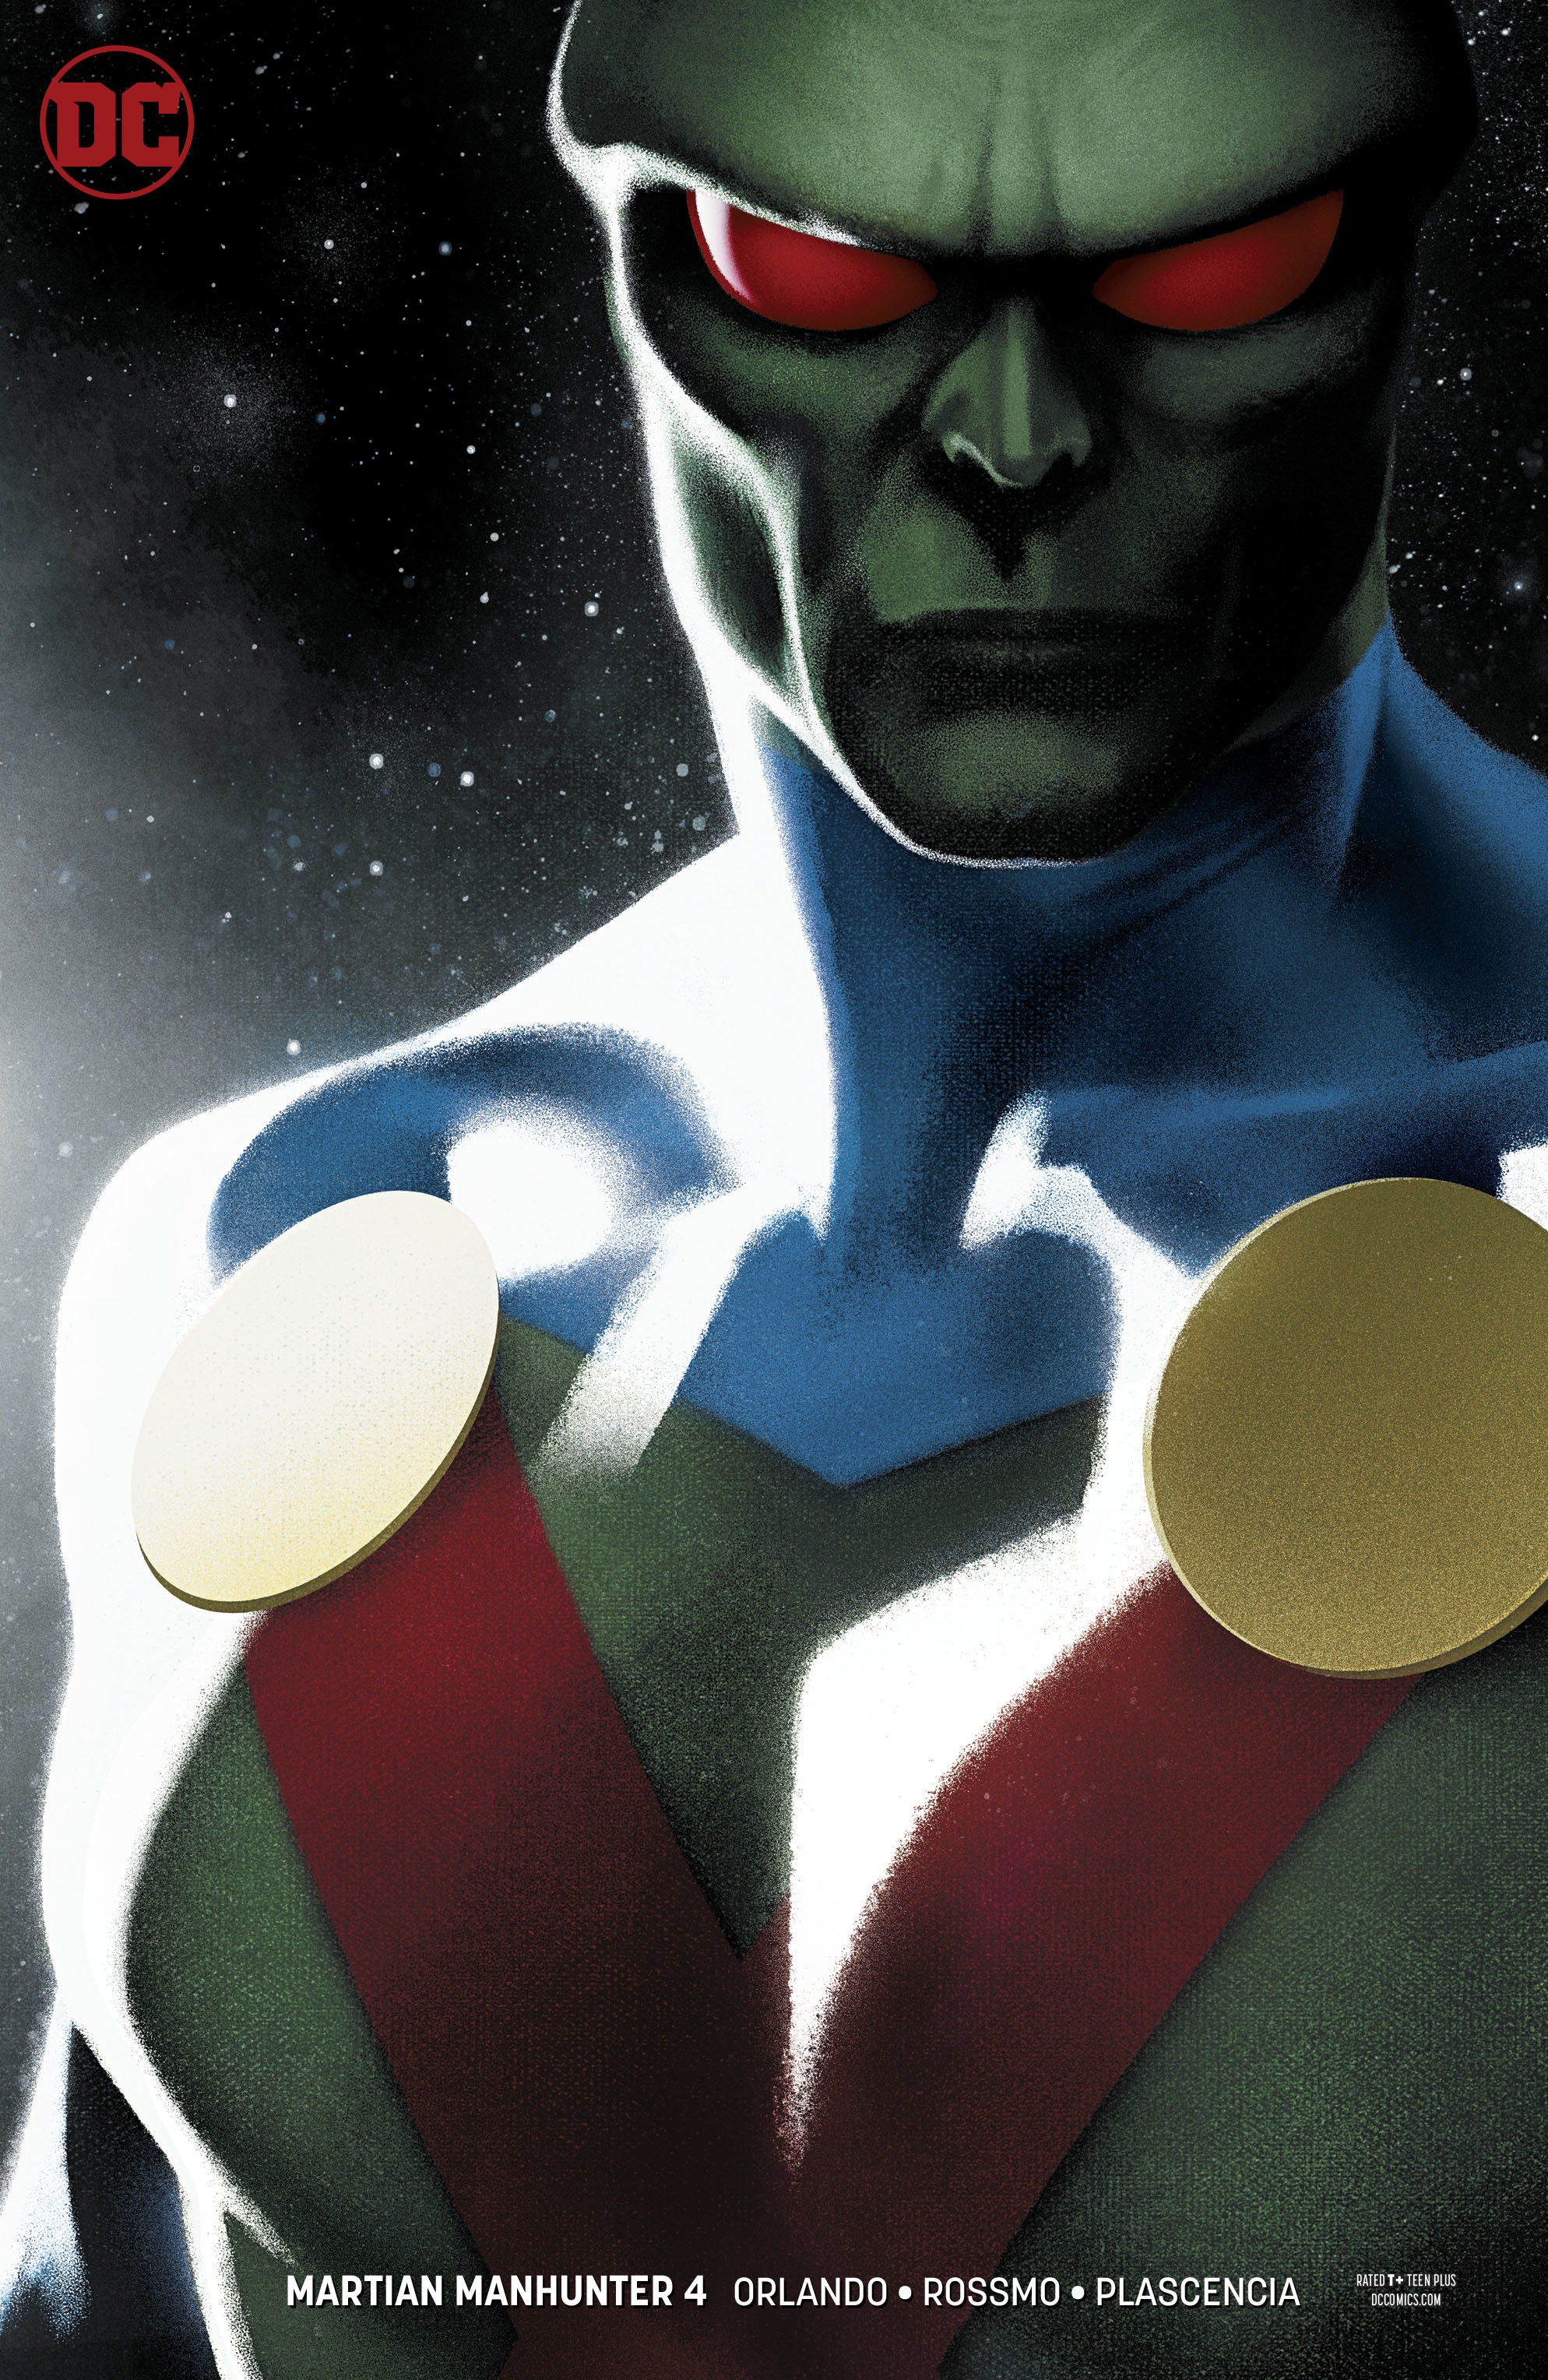 Martian Manhunter #4  is out now.